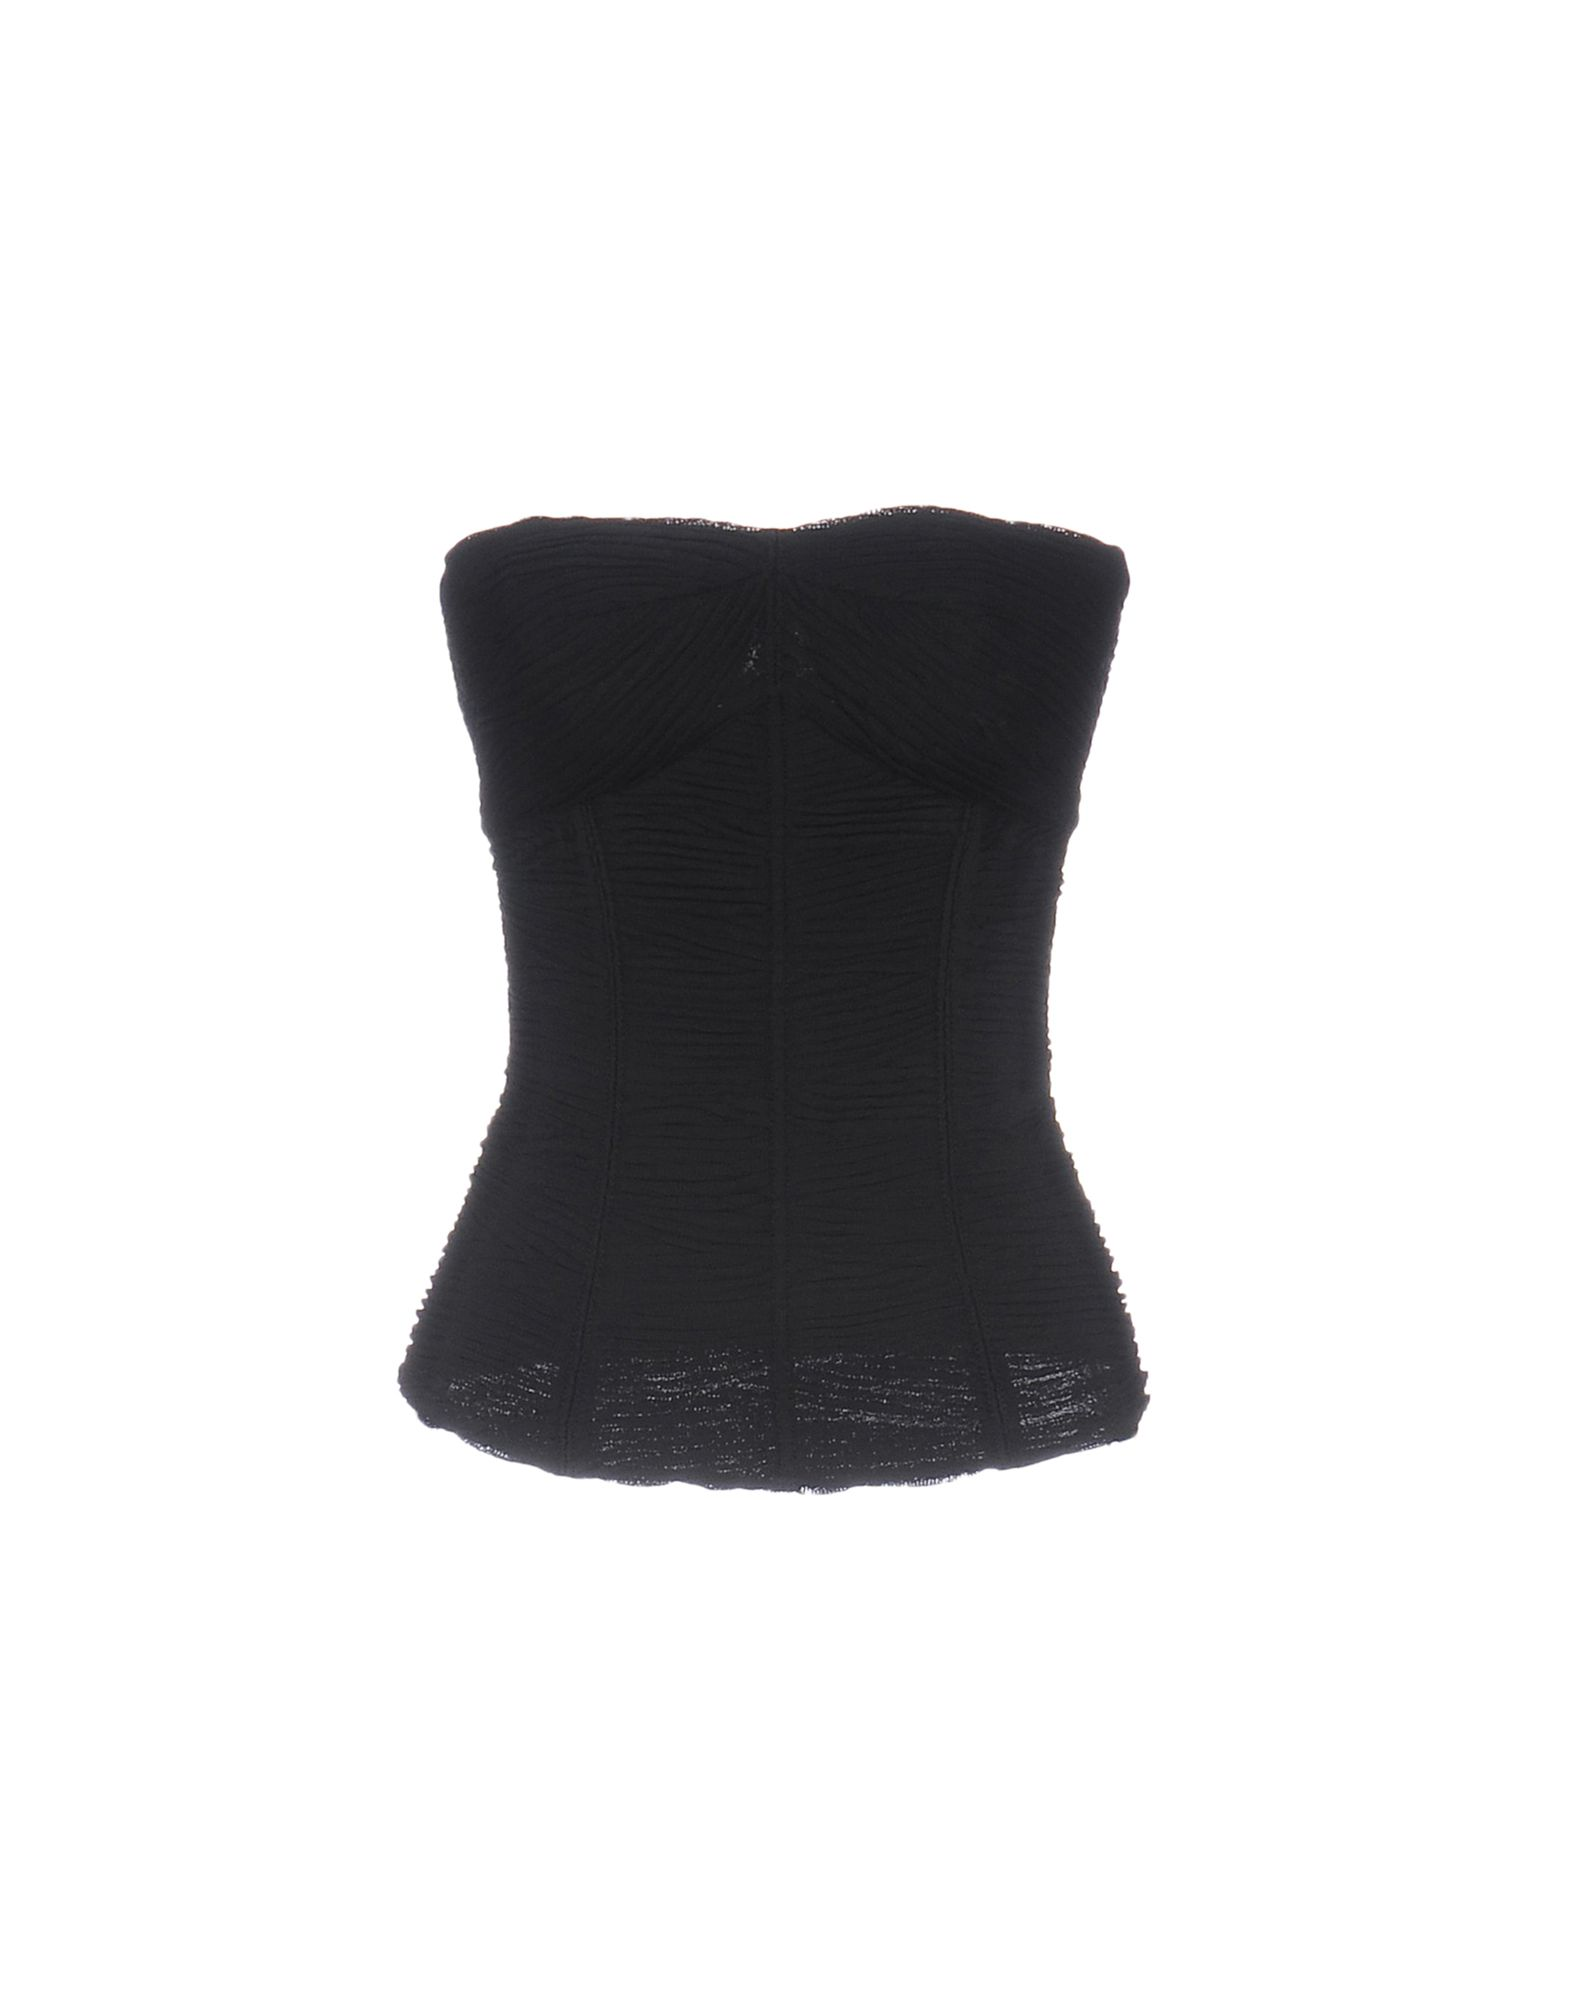 Top A Fascia Vdp Collection Donna - Acquista online su DcfhGWiES